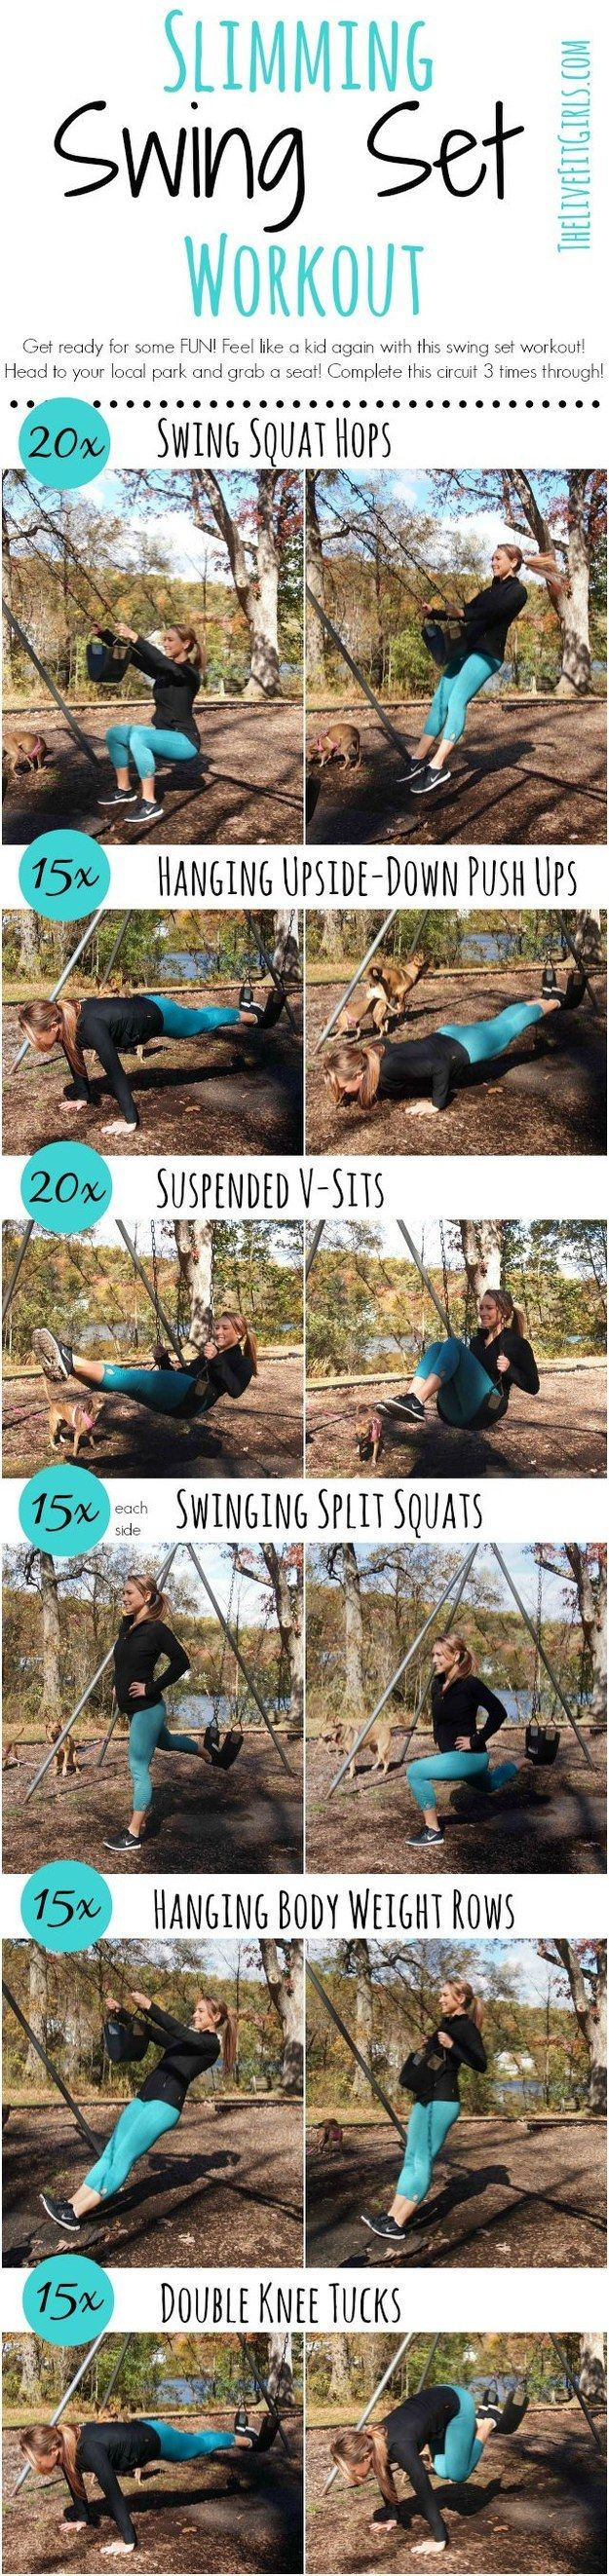 And for when you want to take your workout to a local park:   18 Quick Workouts That'll Help You Exercise Pretty Much Anywhere